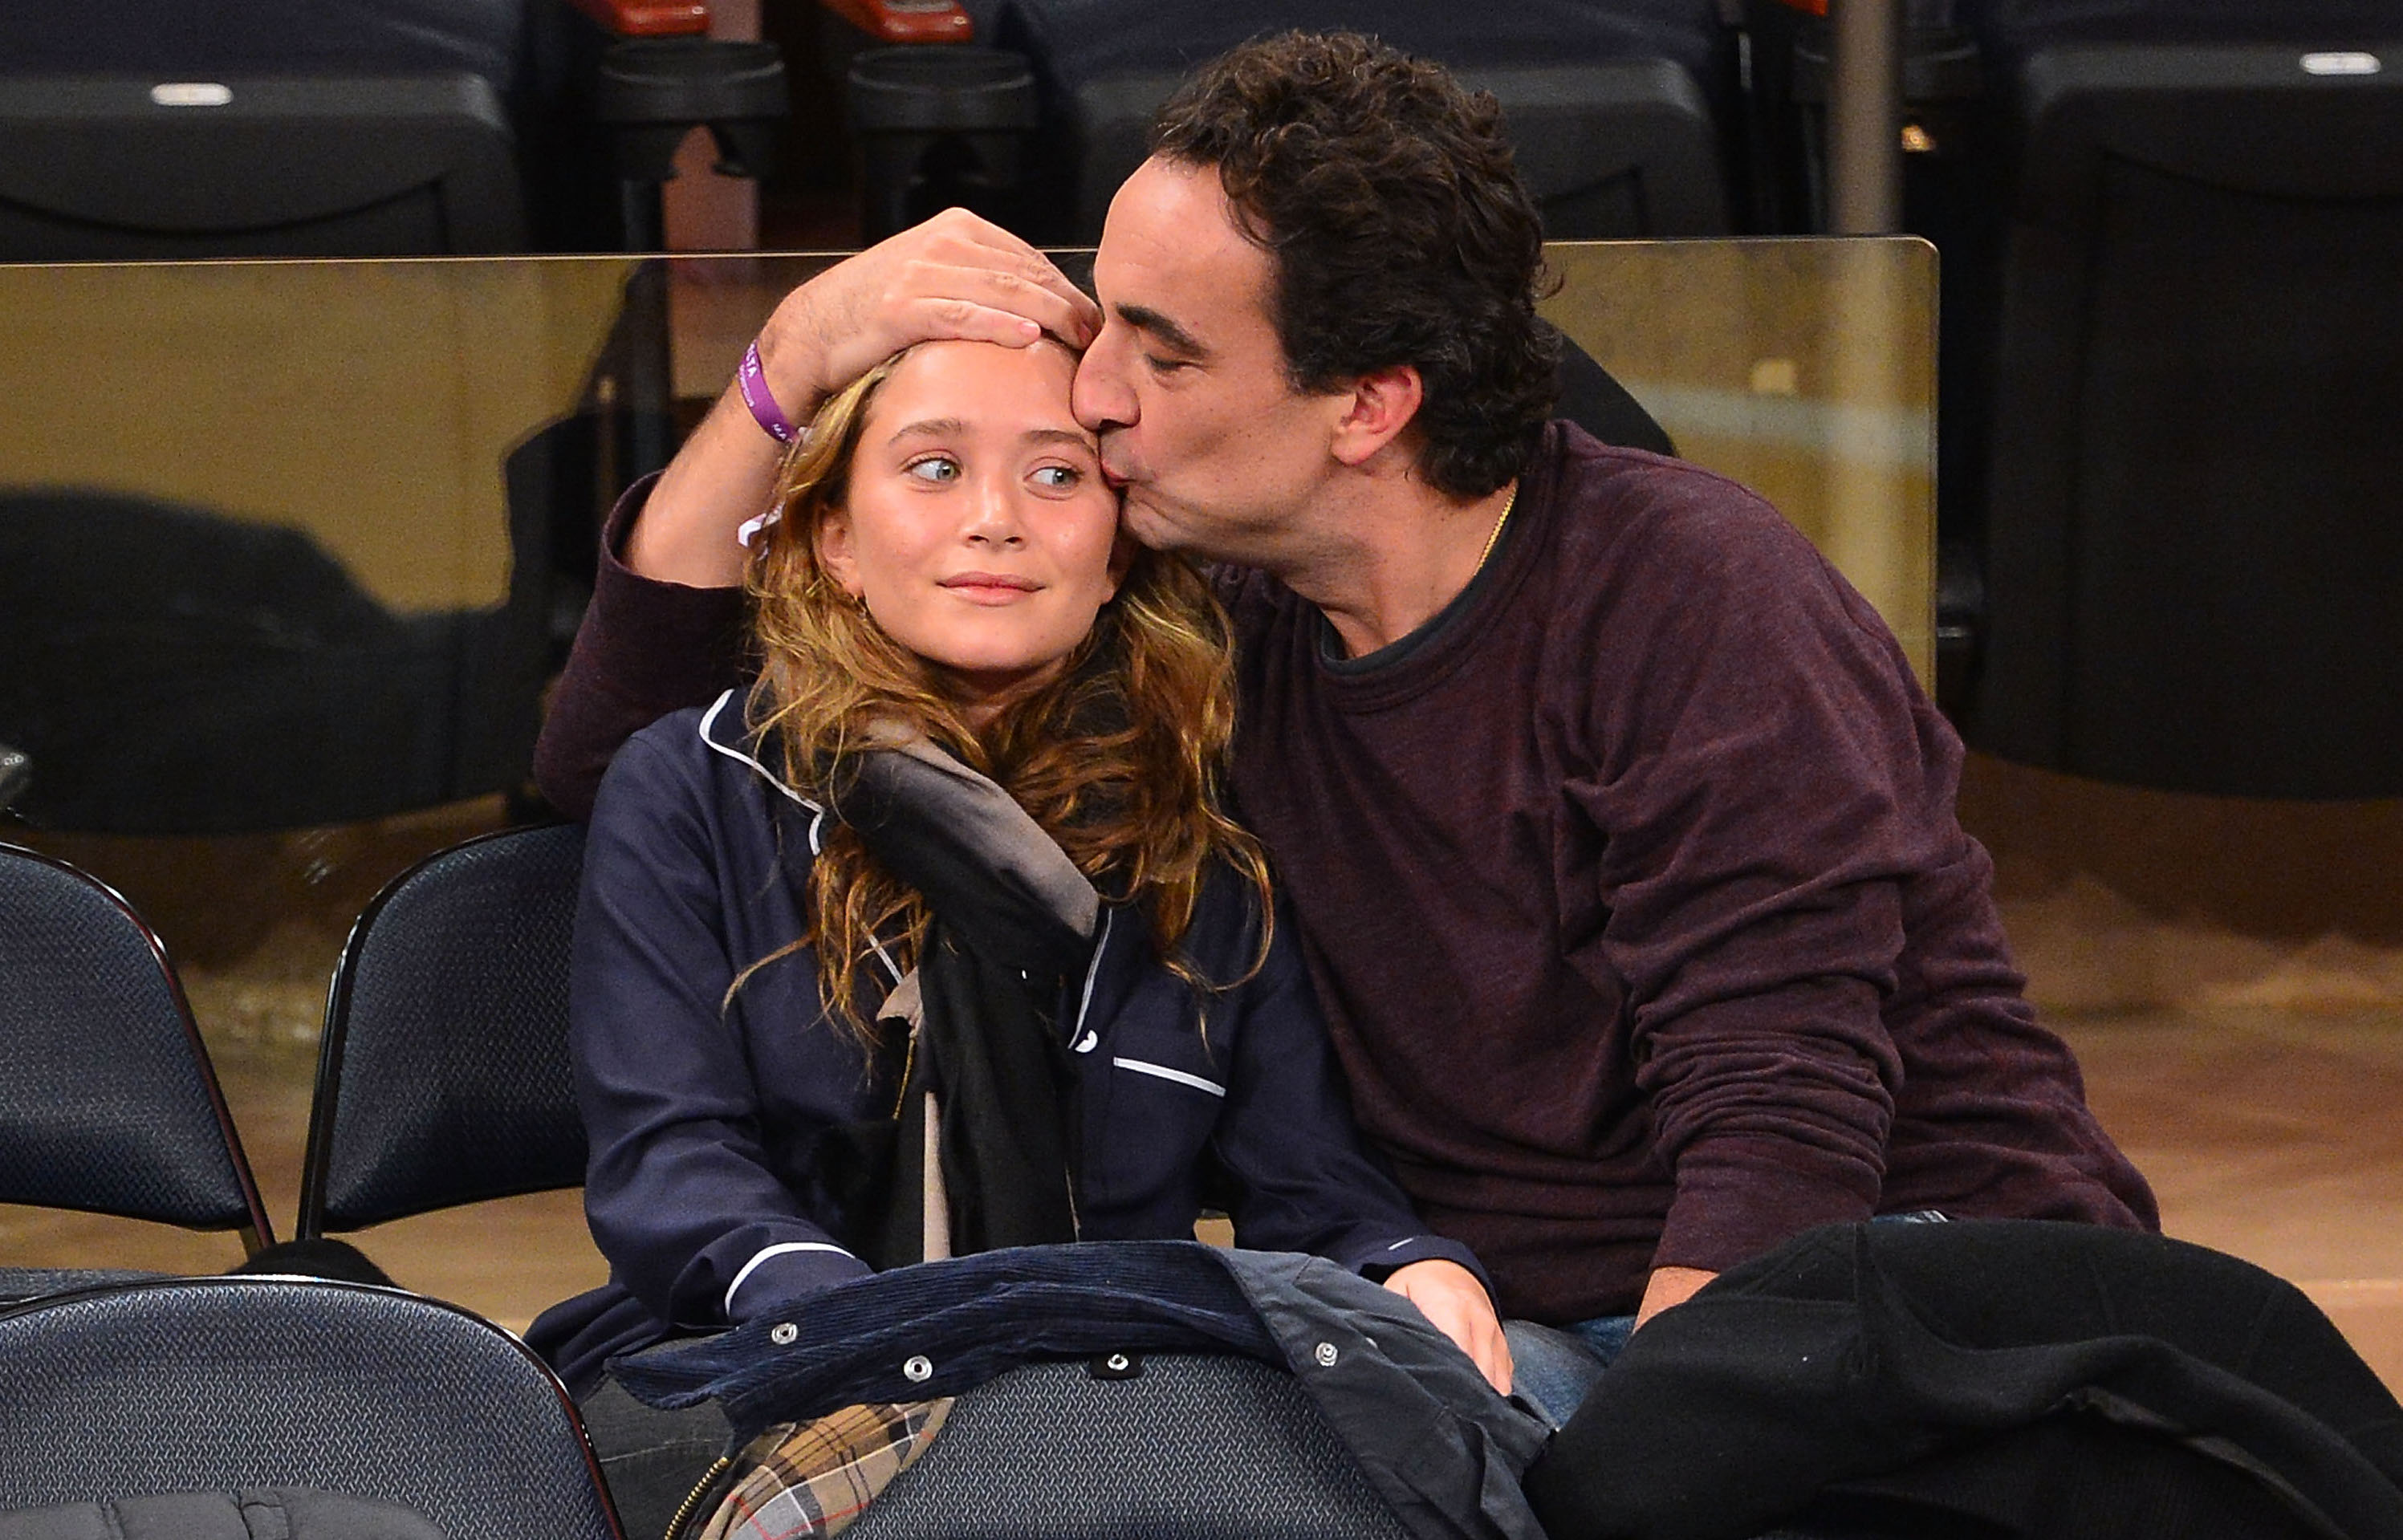 Chilling Photos Of Mary-Kate Olsen And Husband Olivier Sarkozy